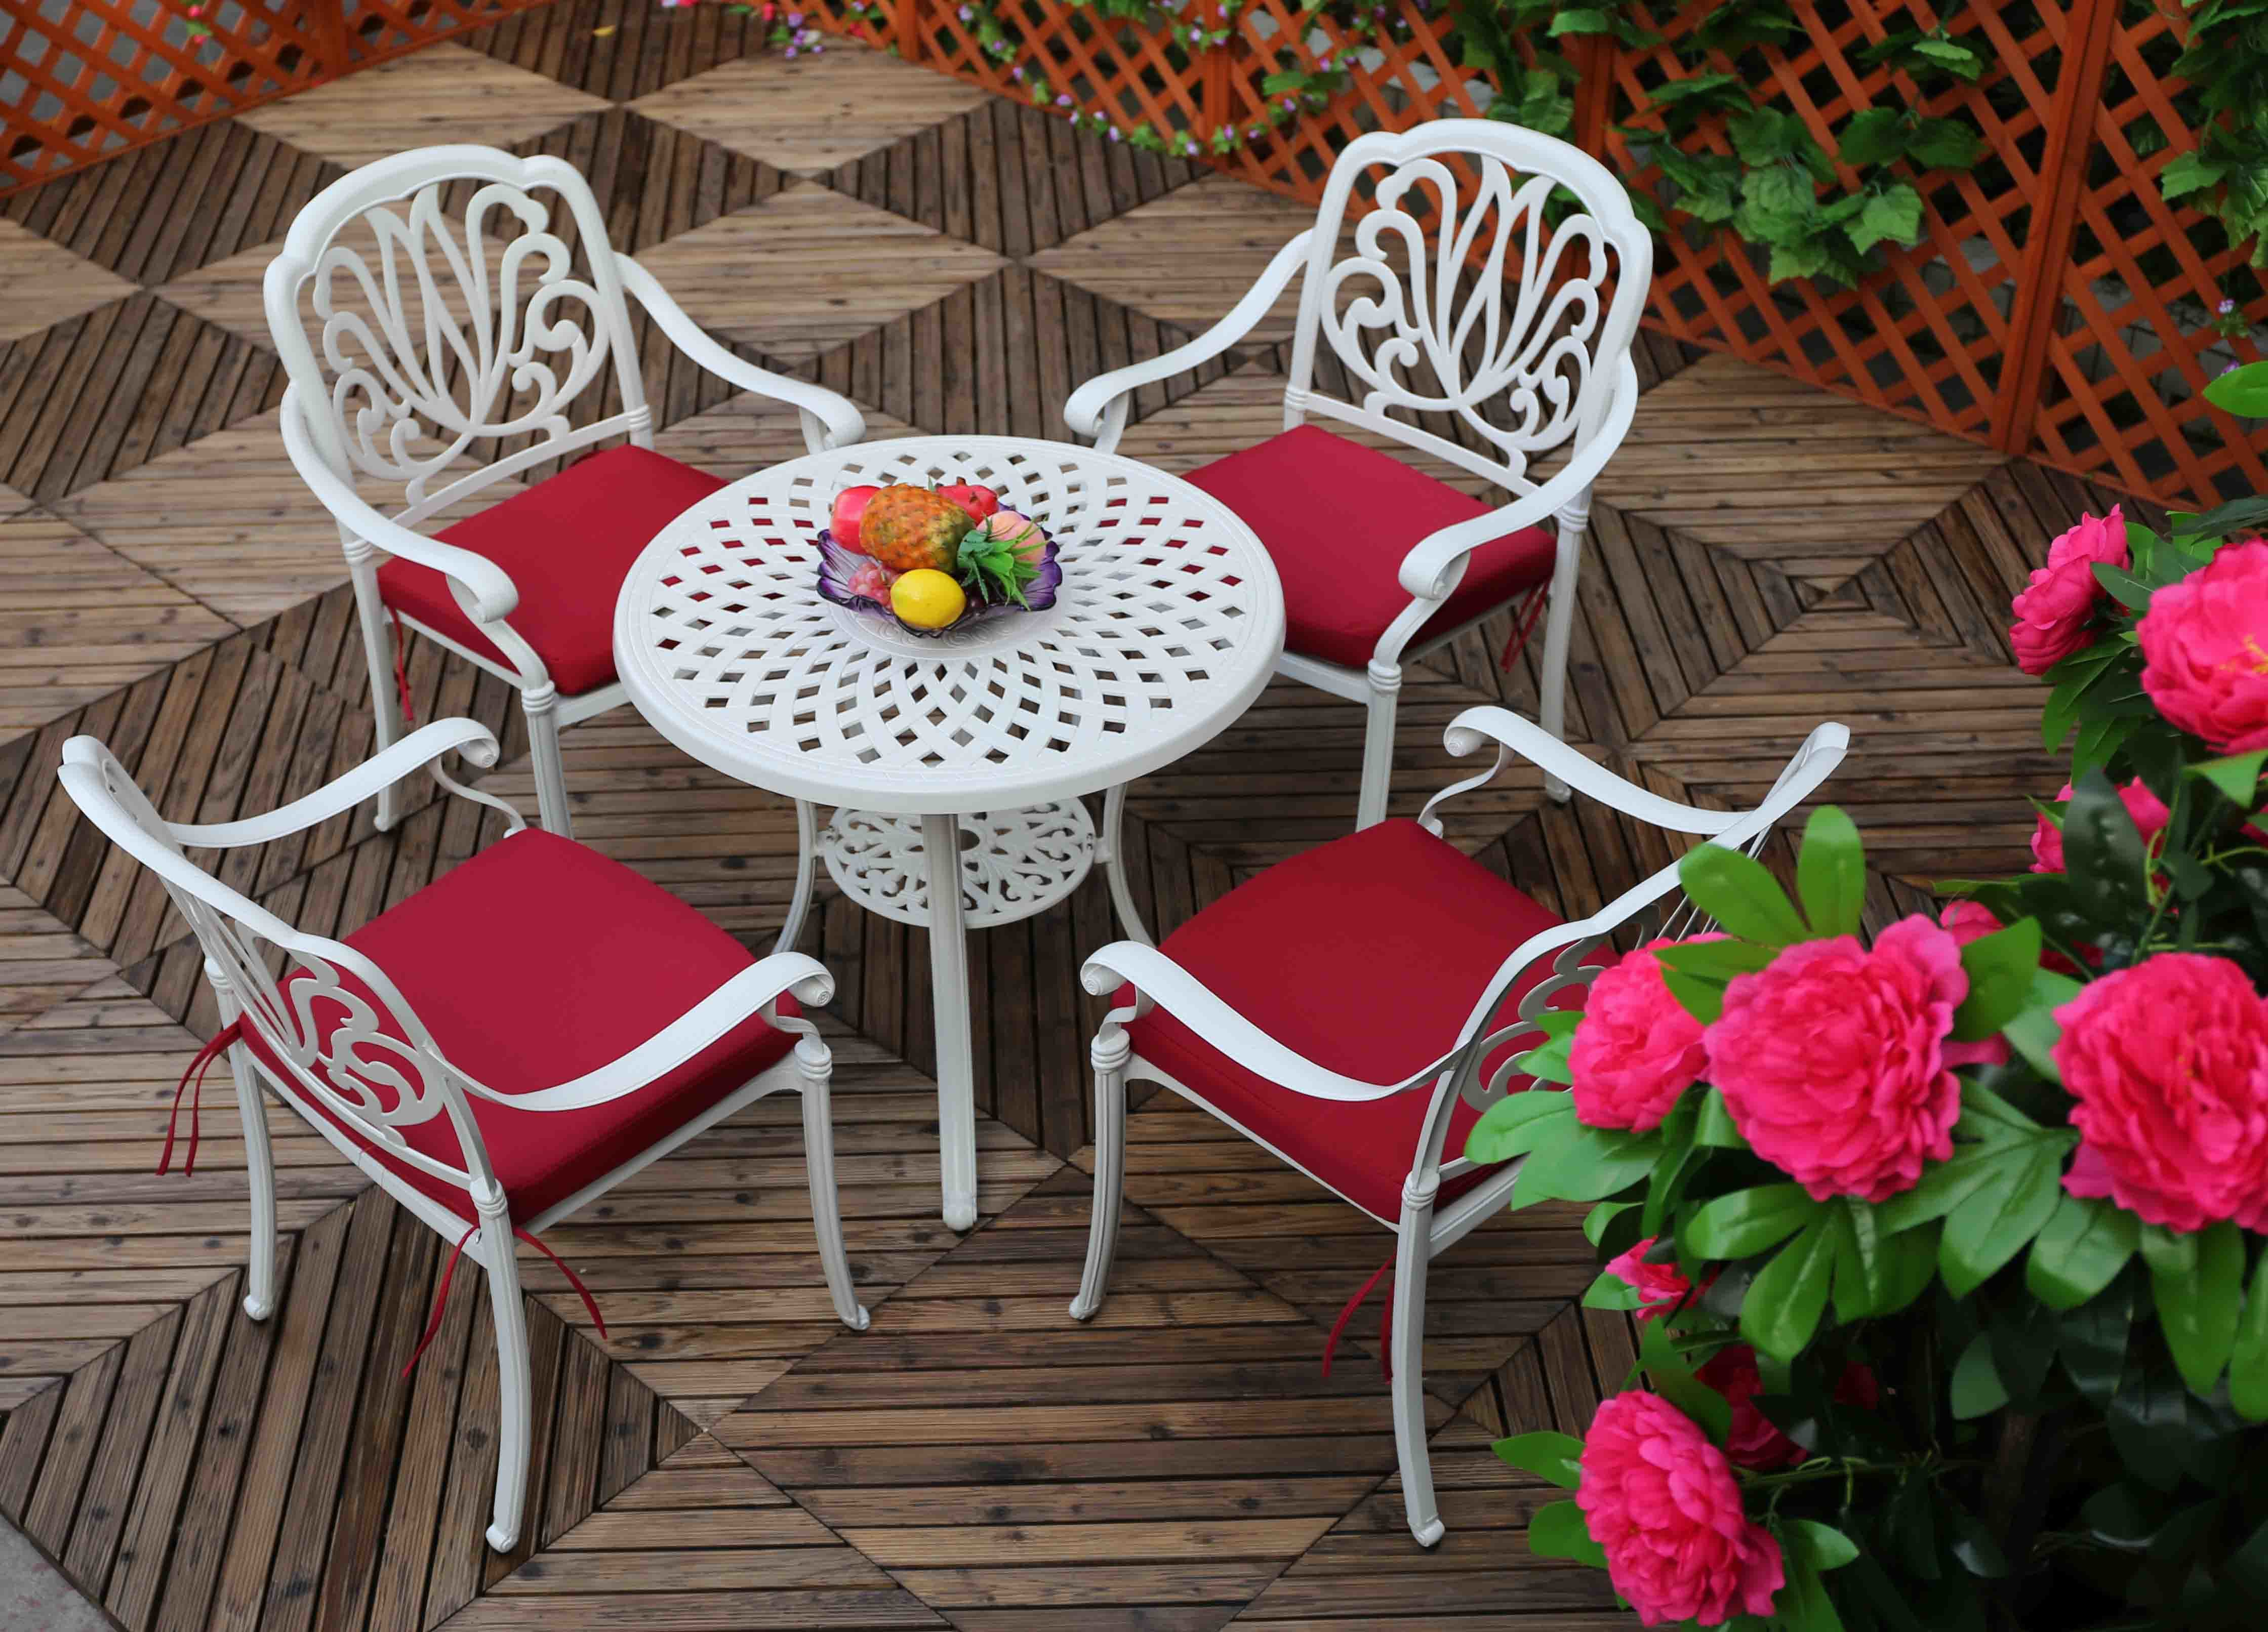 Classical USA Backyard Outdoor Garden Patio Dining Table and Chairs with Red Cushion